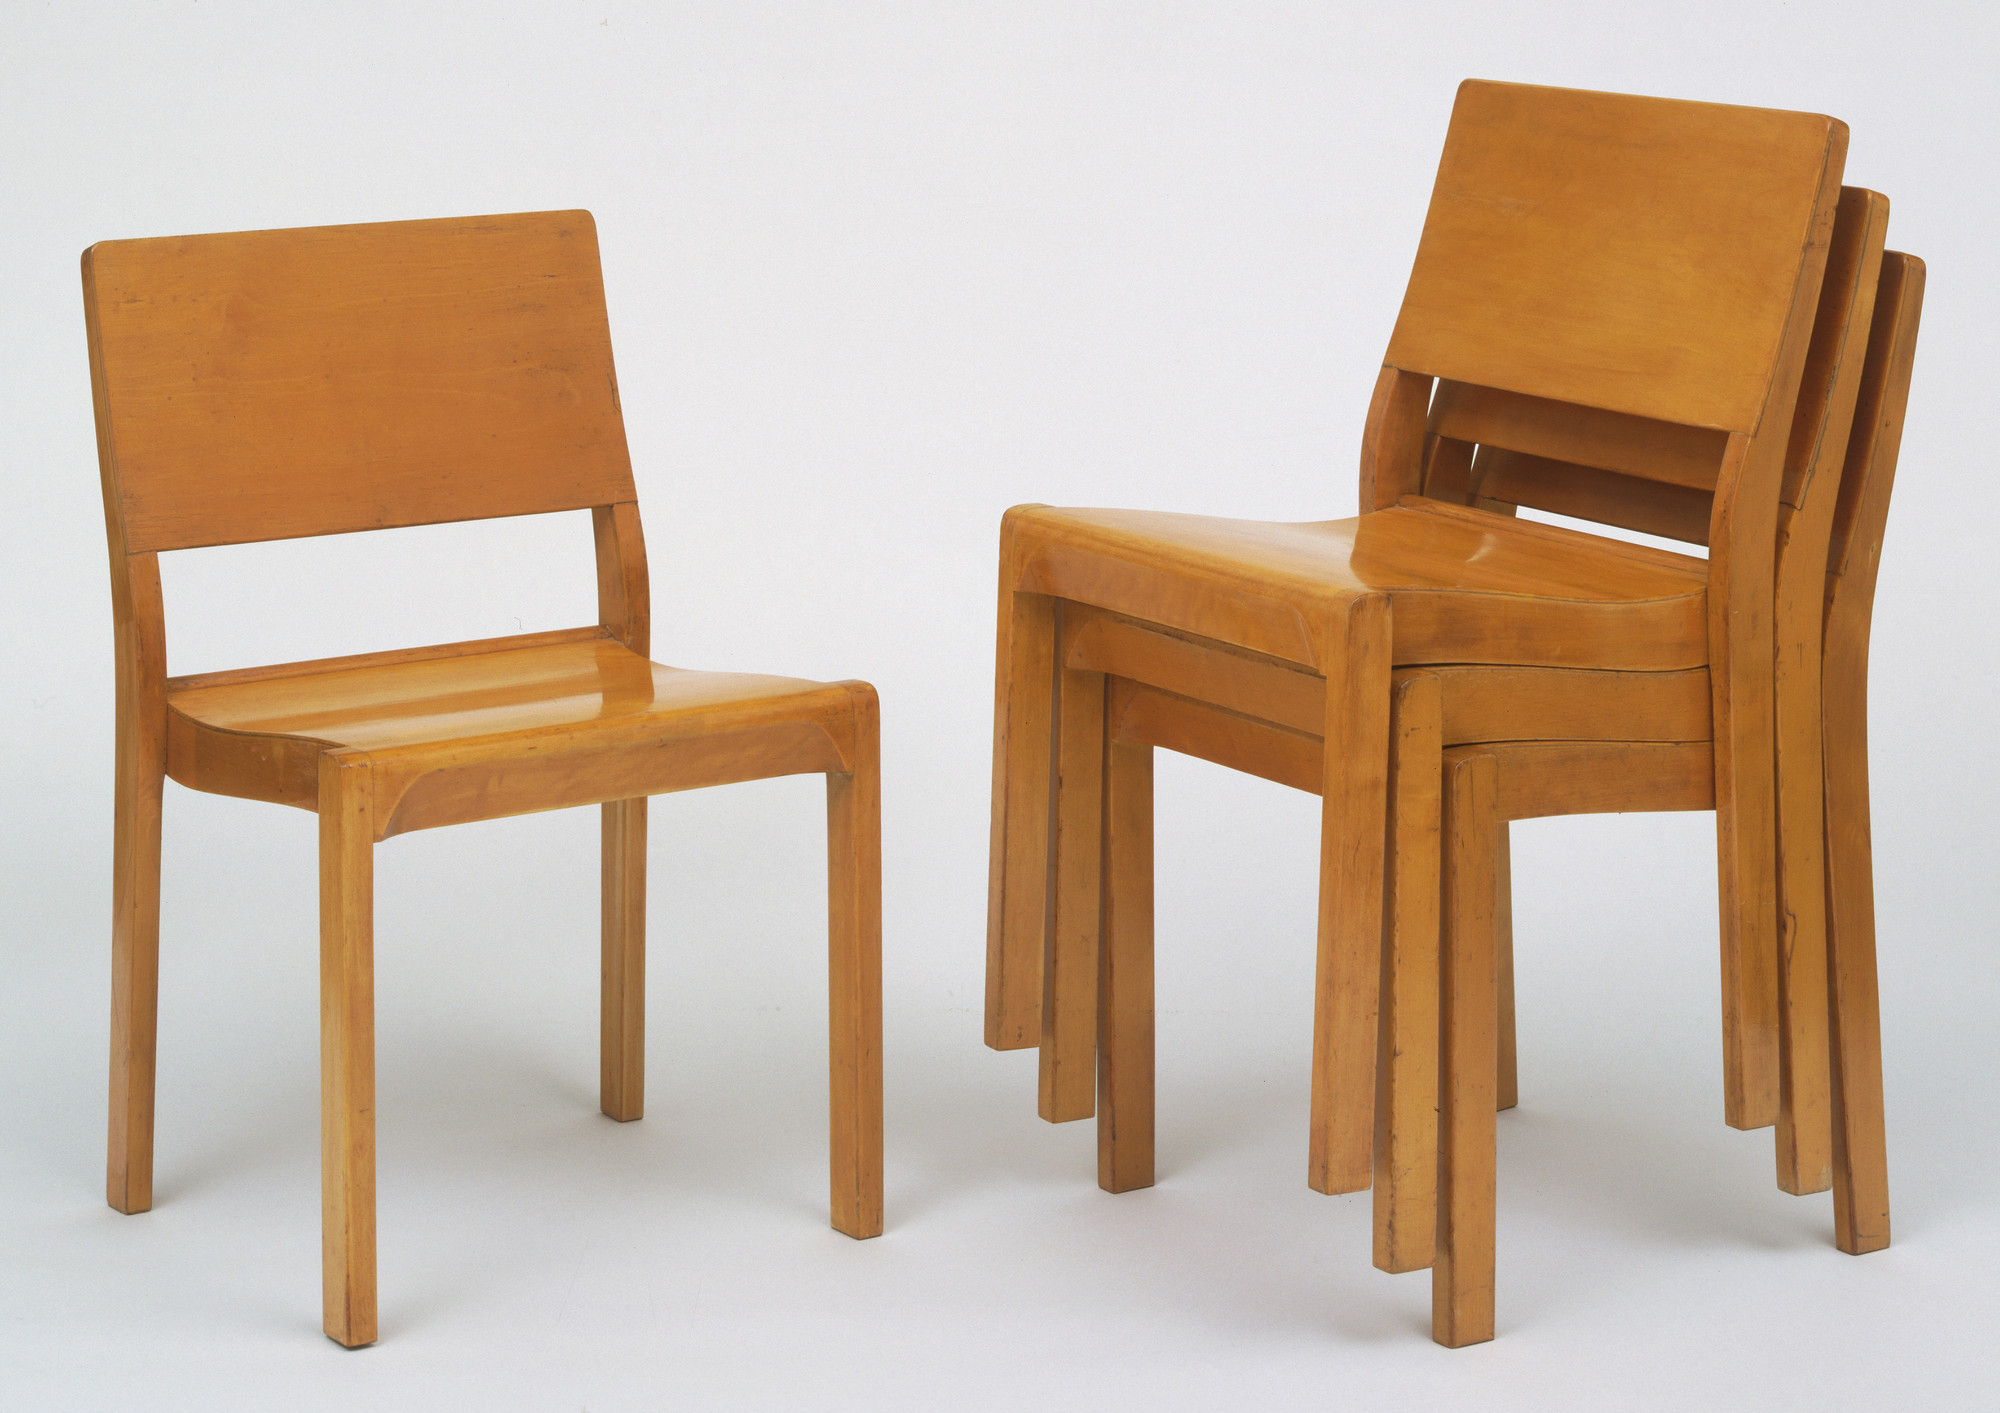 Alvar Aalto. Stacking Side Chairs. 1929